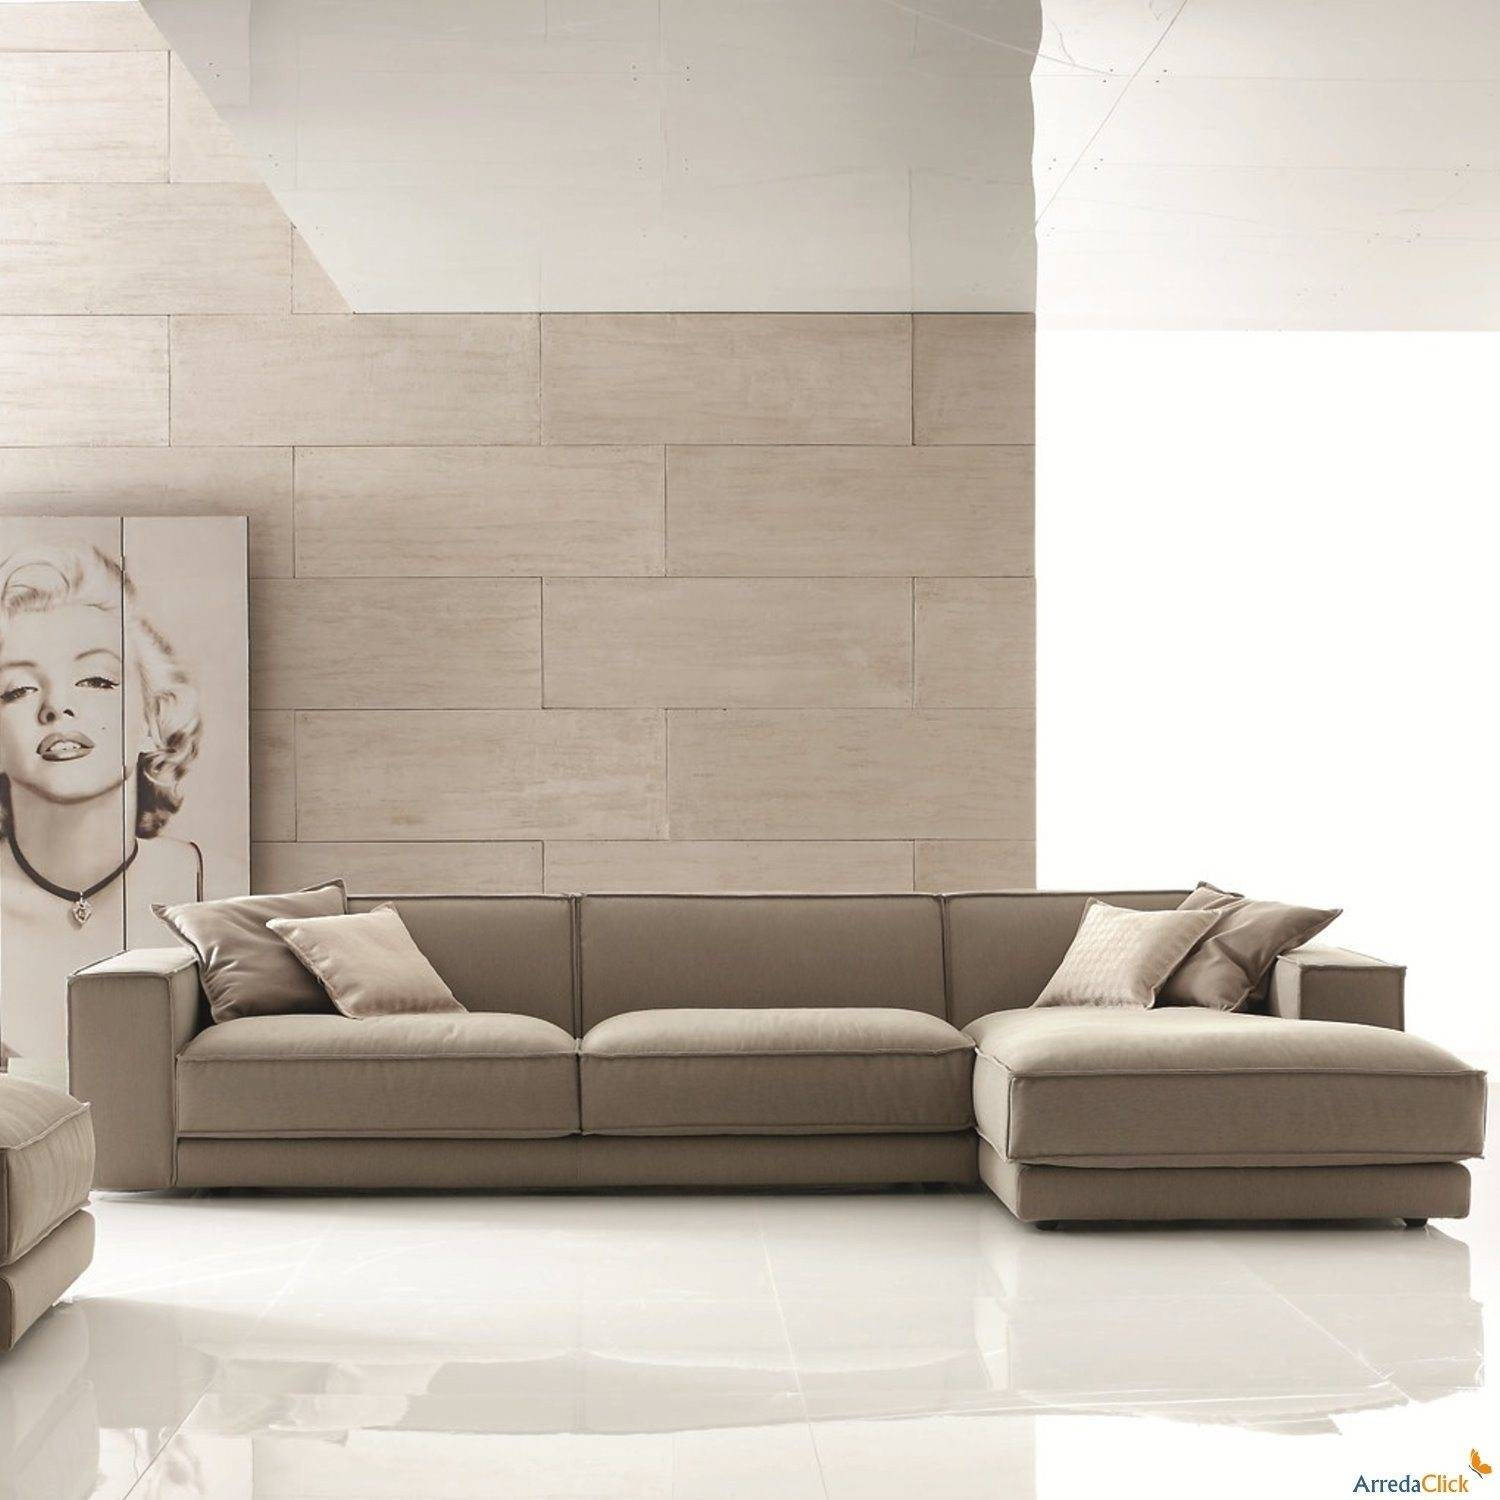 The Most Popular Long Sectional Sofa With Chaise 46 In Down Filled with regard to Down Filled Sofa Sectional (Image 25 of 25)